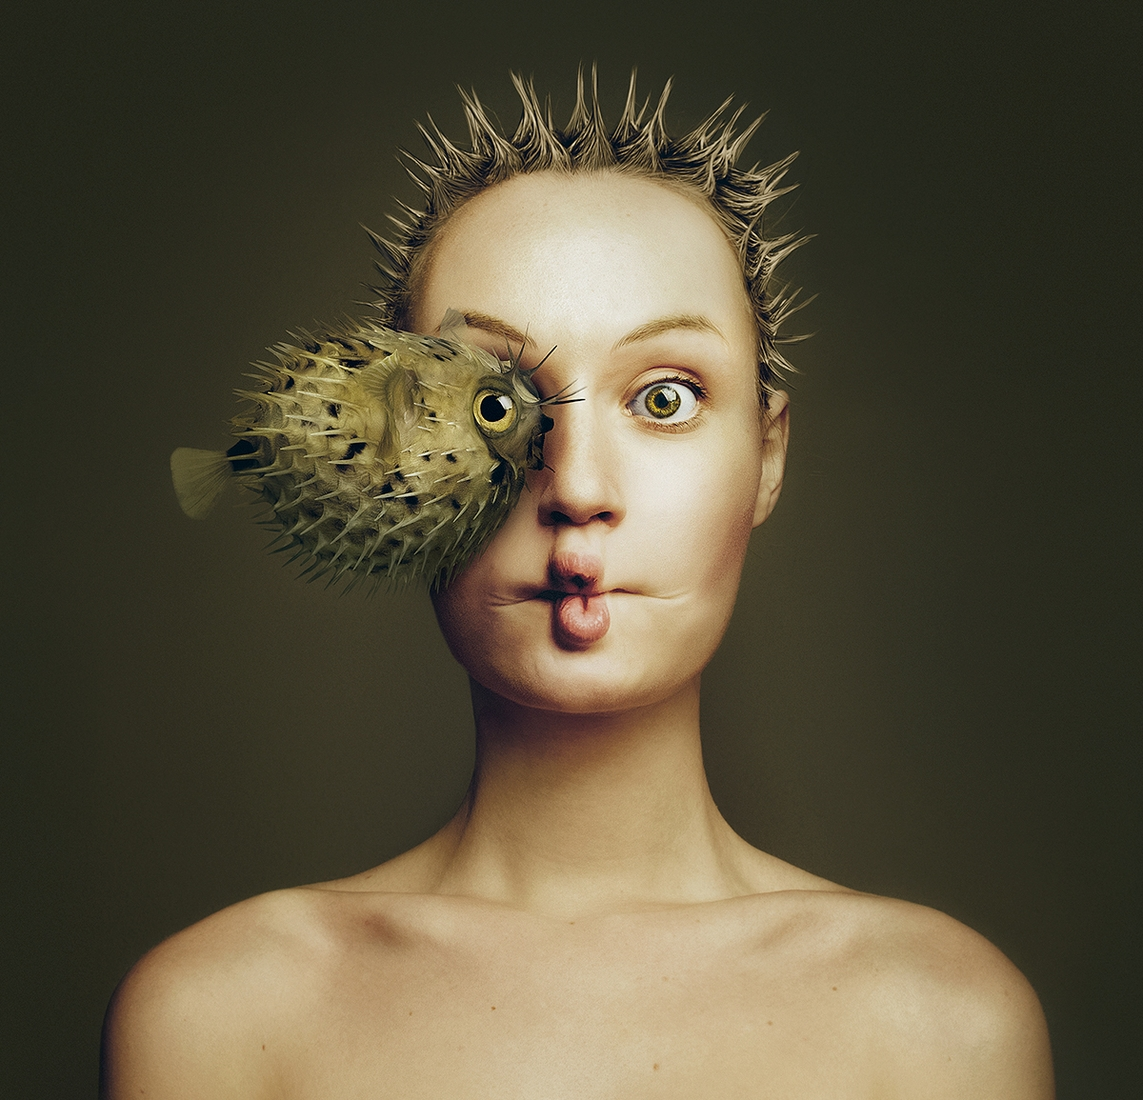 06-Puffer-Fish-Flora-Borsi-Animeyed-Self-Portraits-Surreal-Photographs-www-designstack-co